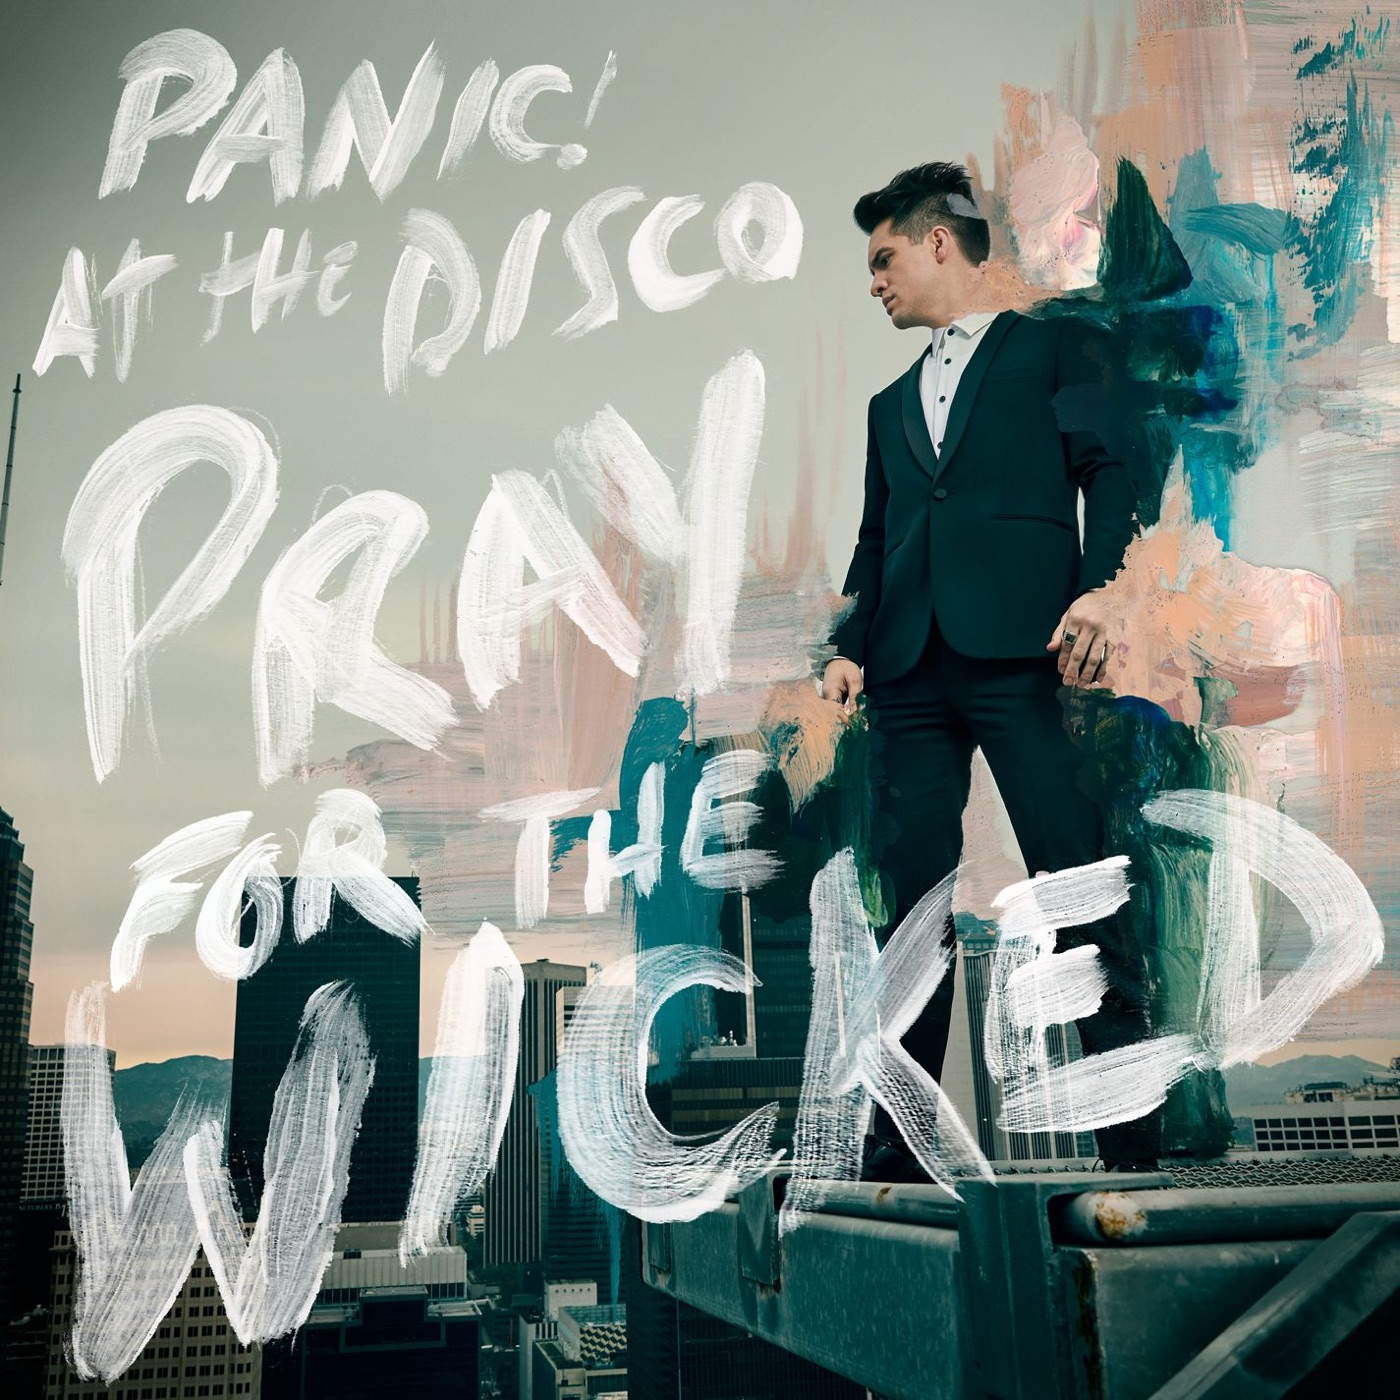 Panic! At the Disco - High Hopes [Single] (2018)